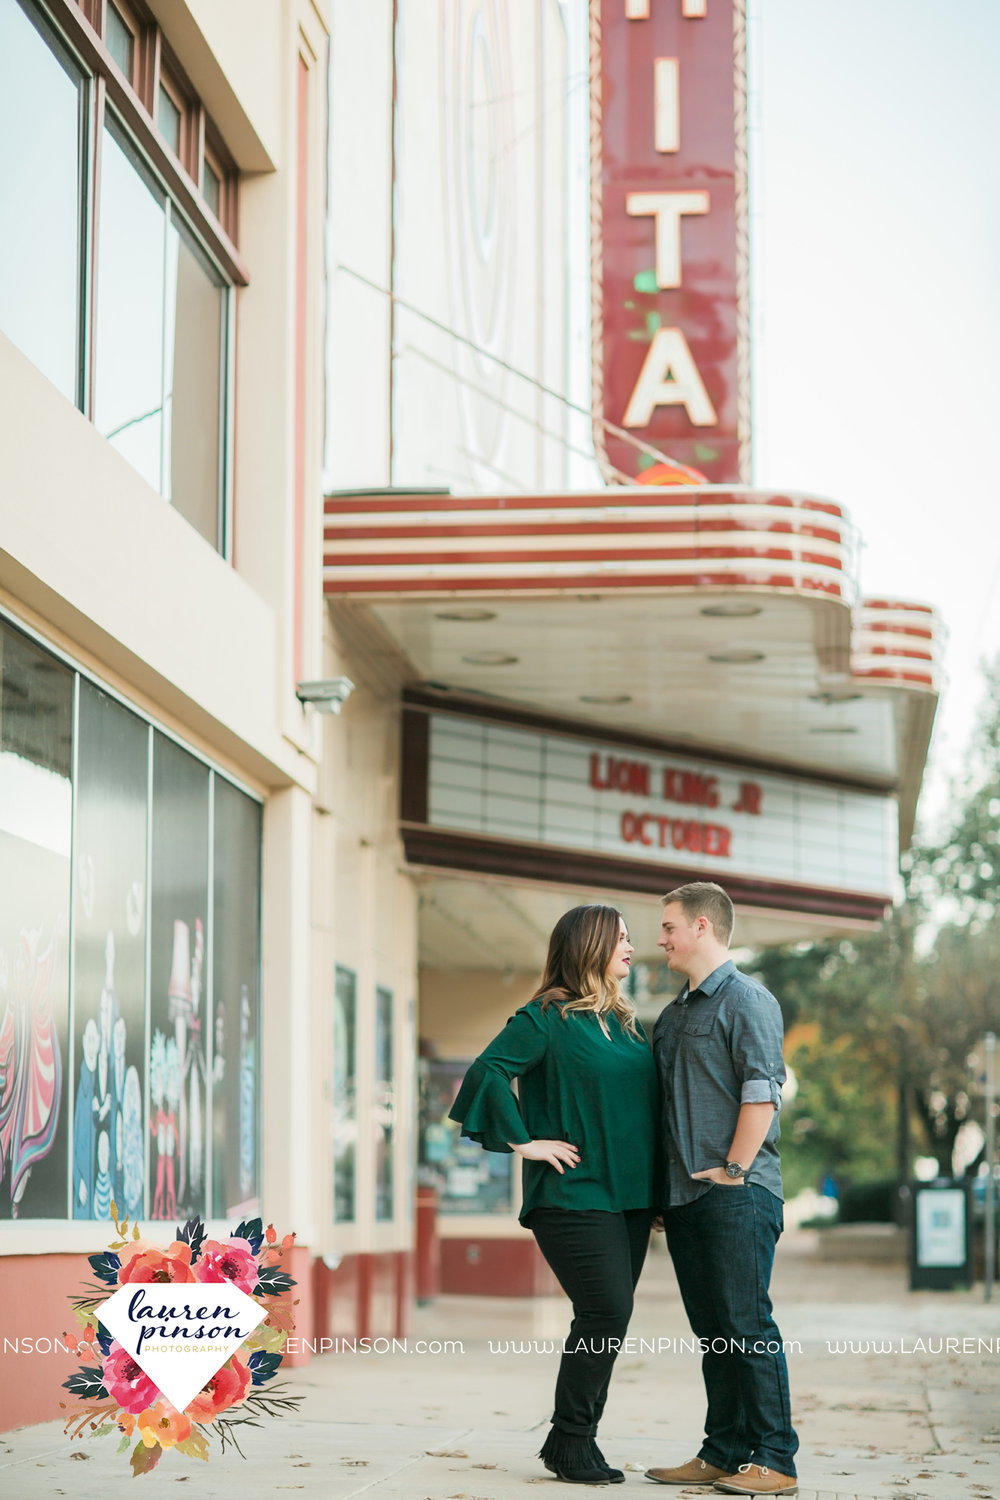 wichita-falls-texas-engagement-photography-downtown-alley-cat-wichita-theatre-christmas-lights3.jpg